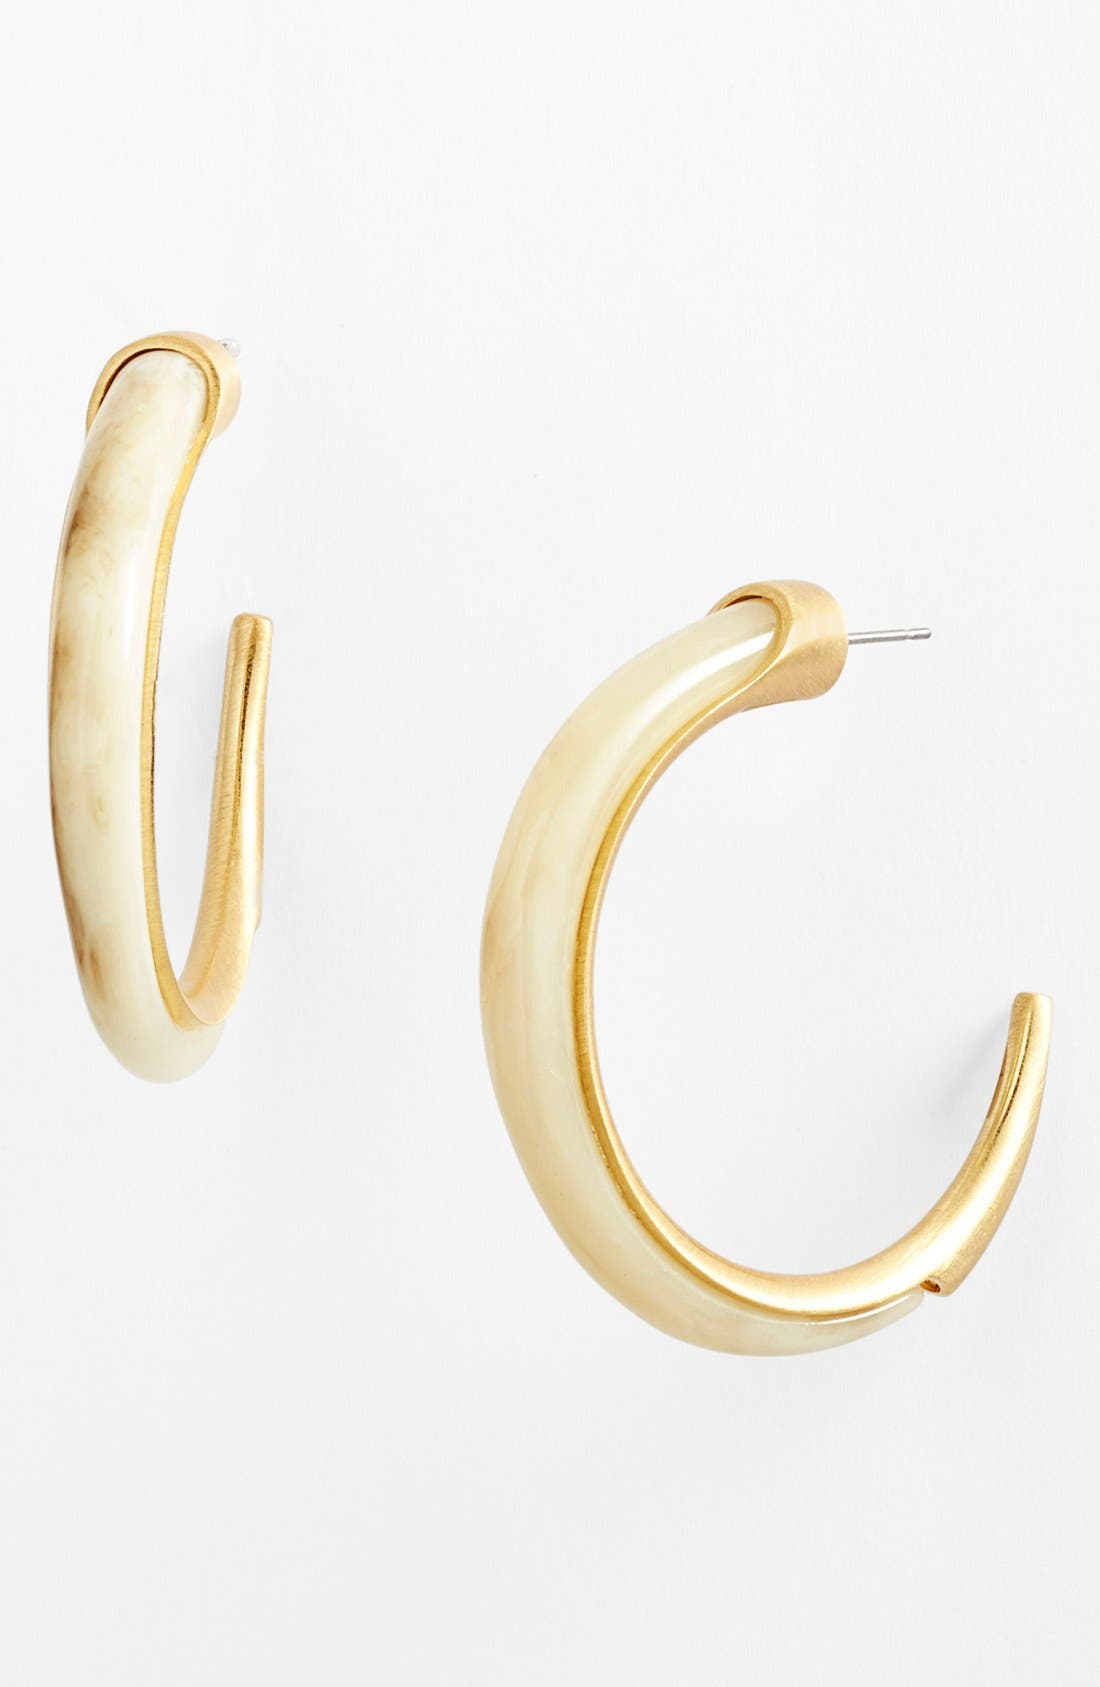 Alternate Image 1 Selected - Vince Camuto 'Thorns & Horns' Hoop Earrings